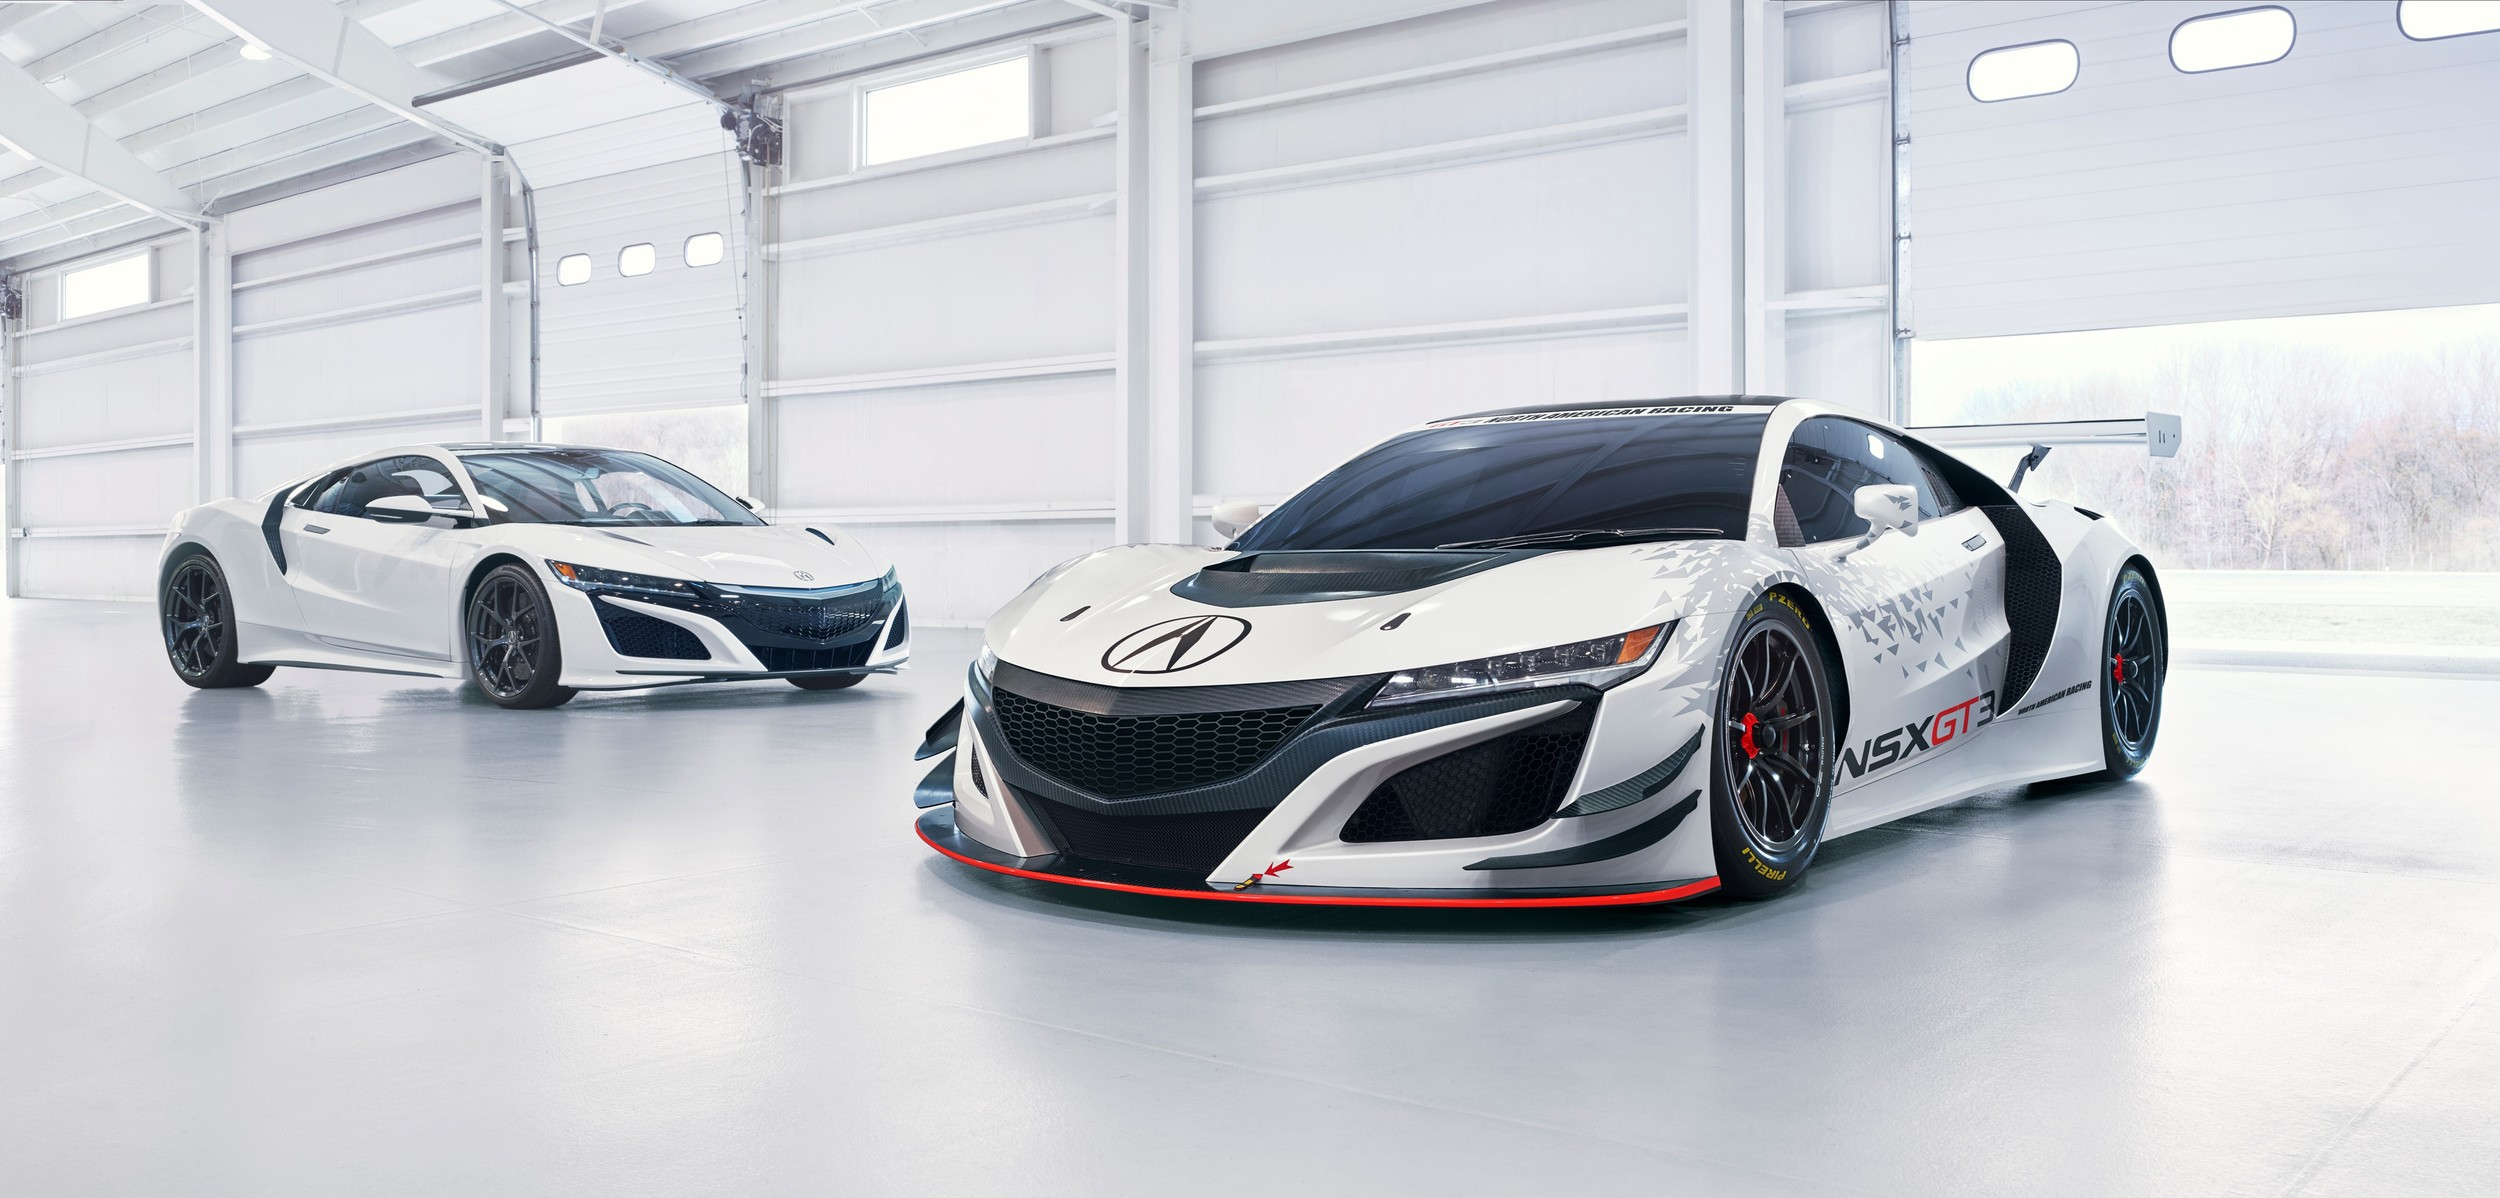 2018 Honda NSX GT3 Is e Expensive Way To Go Customer Racing